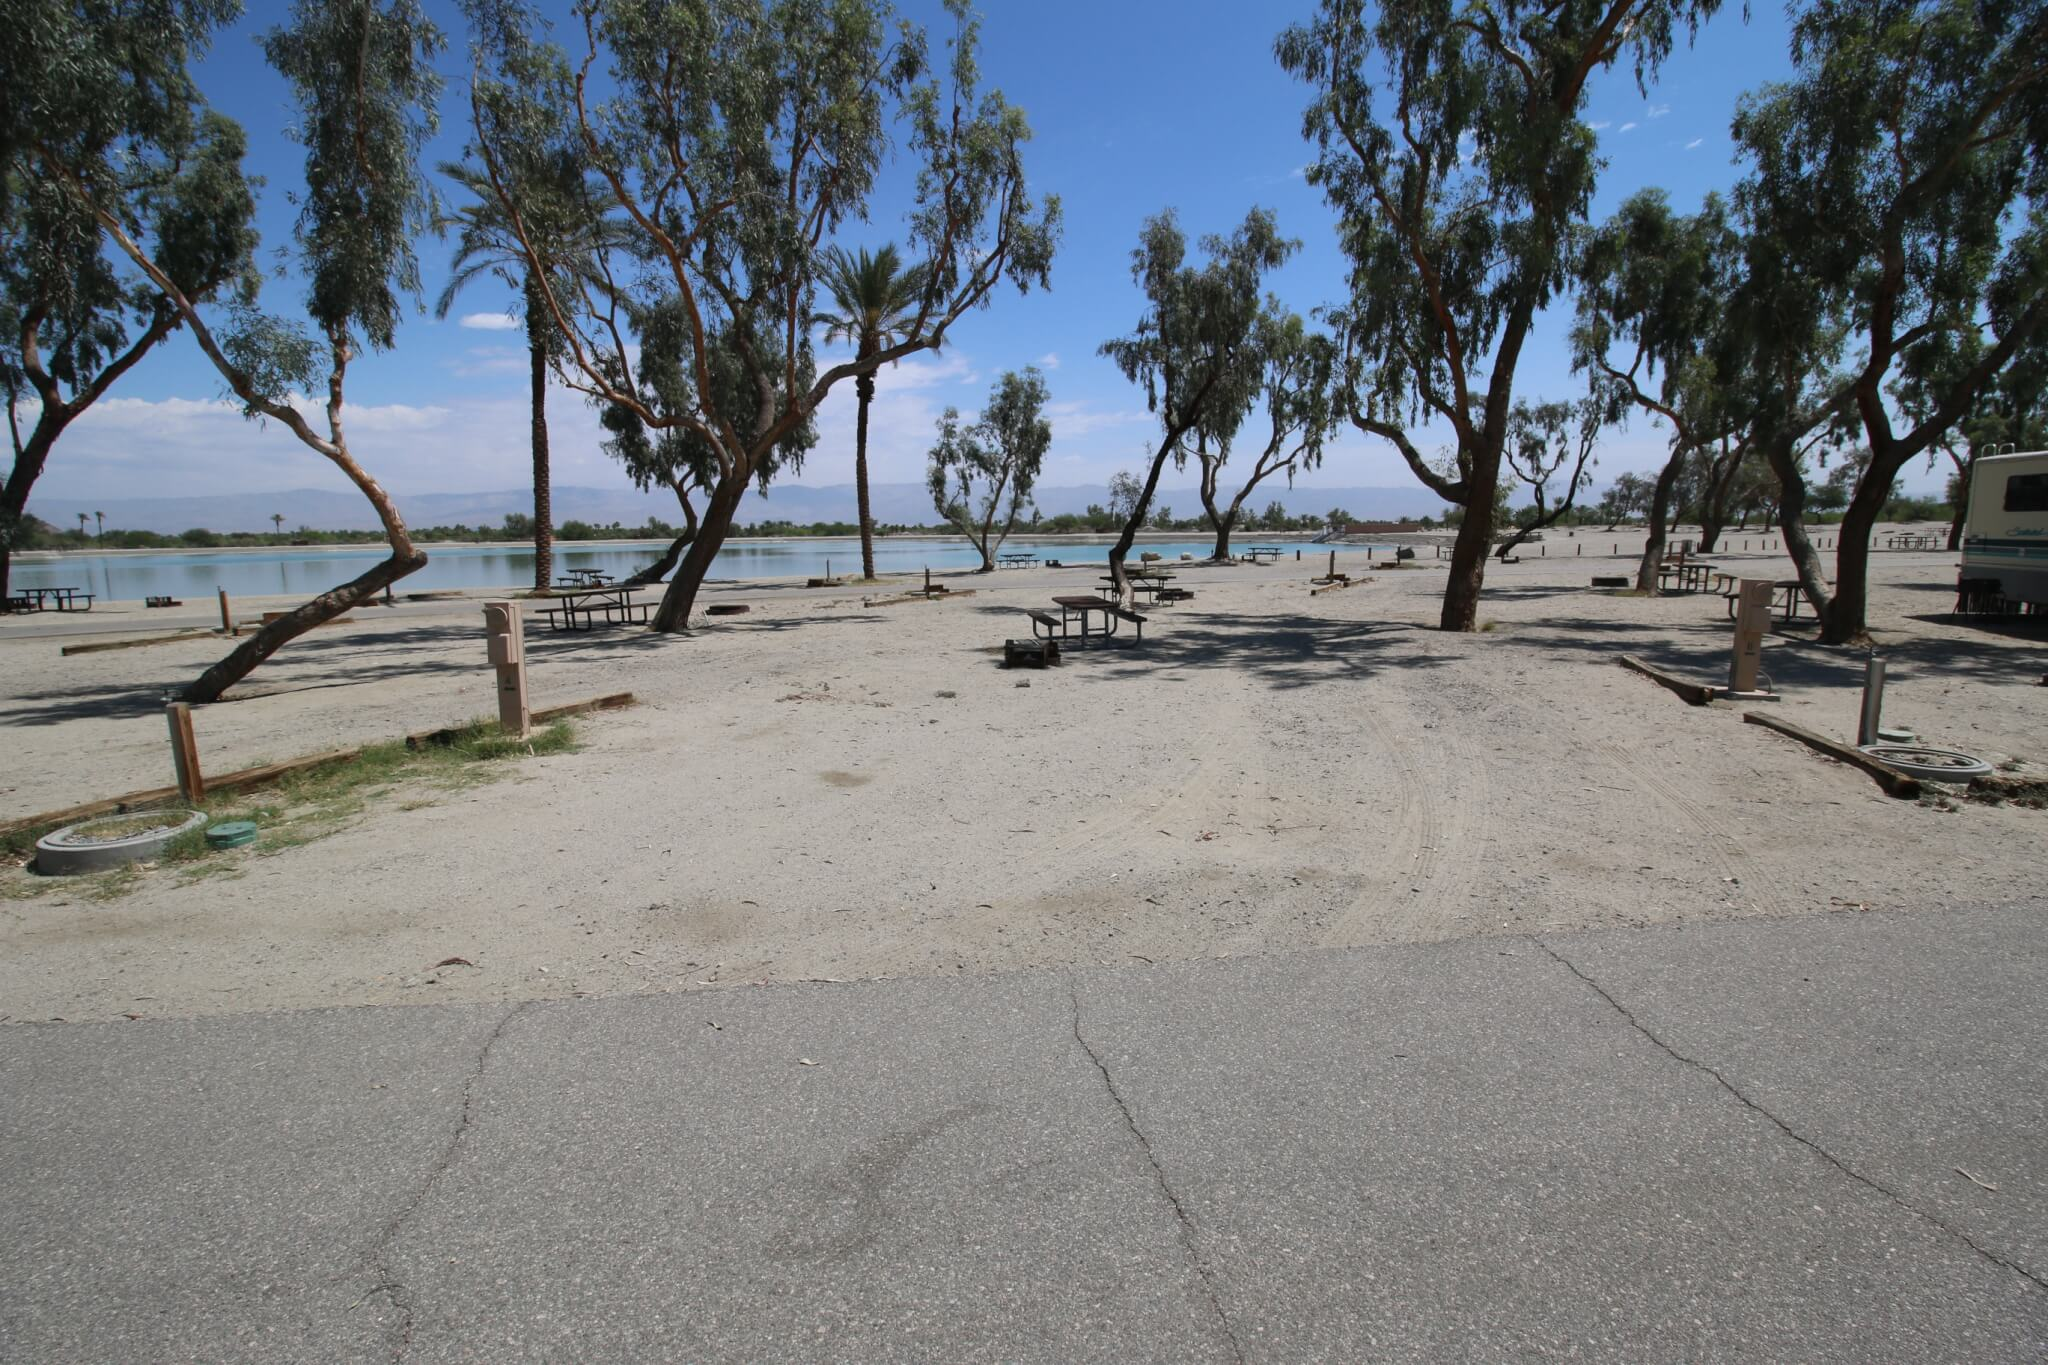 Riverside County Parks Campgrounds_Lake Cahuilla Campsite 6